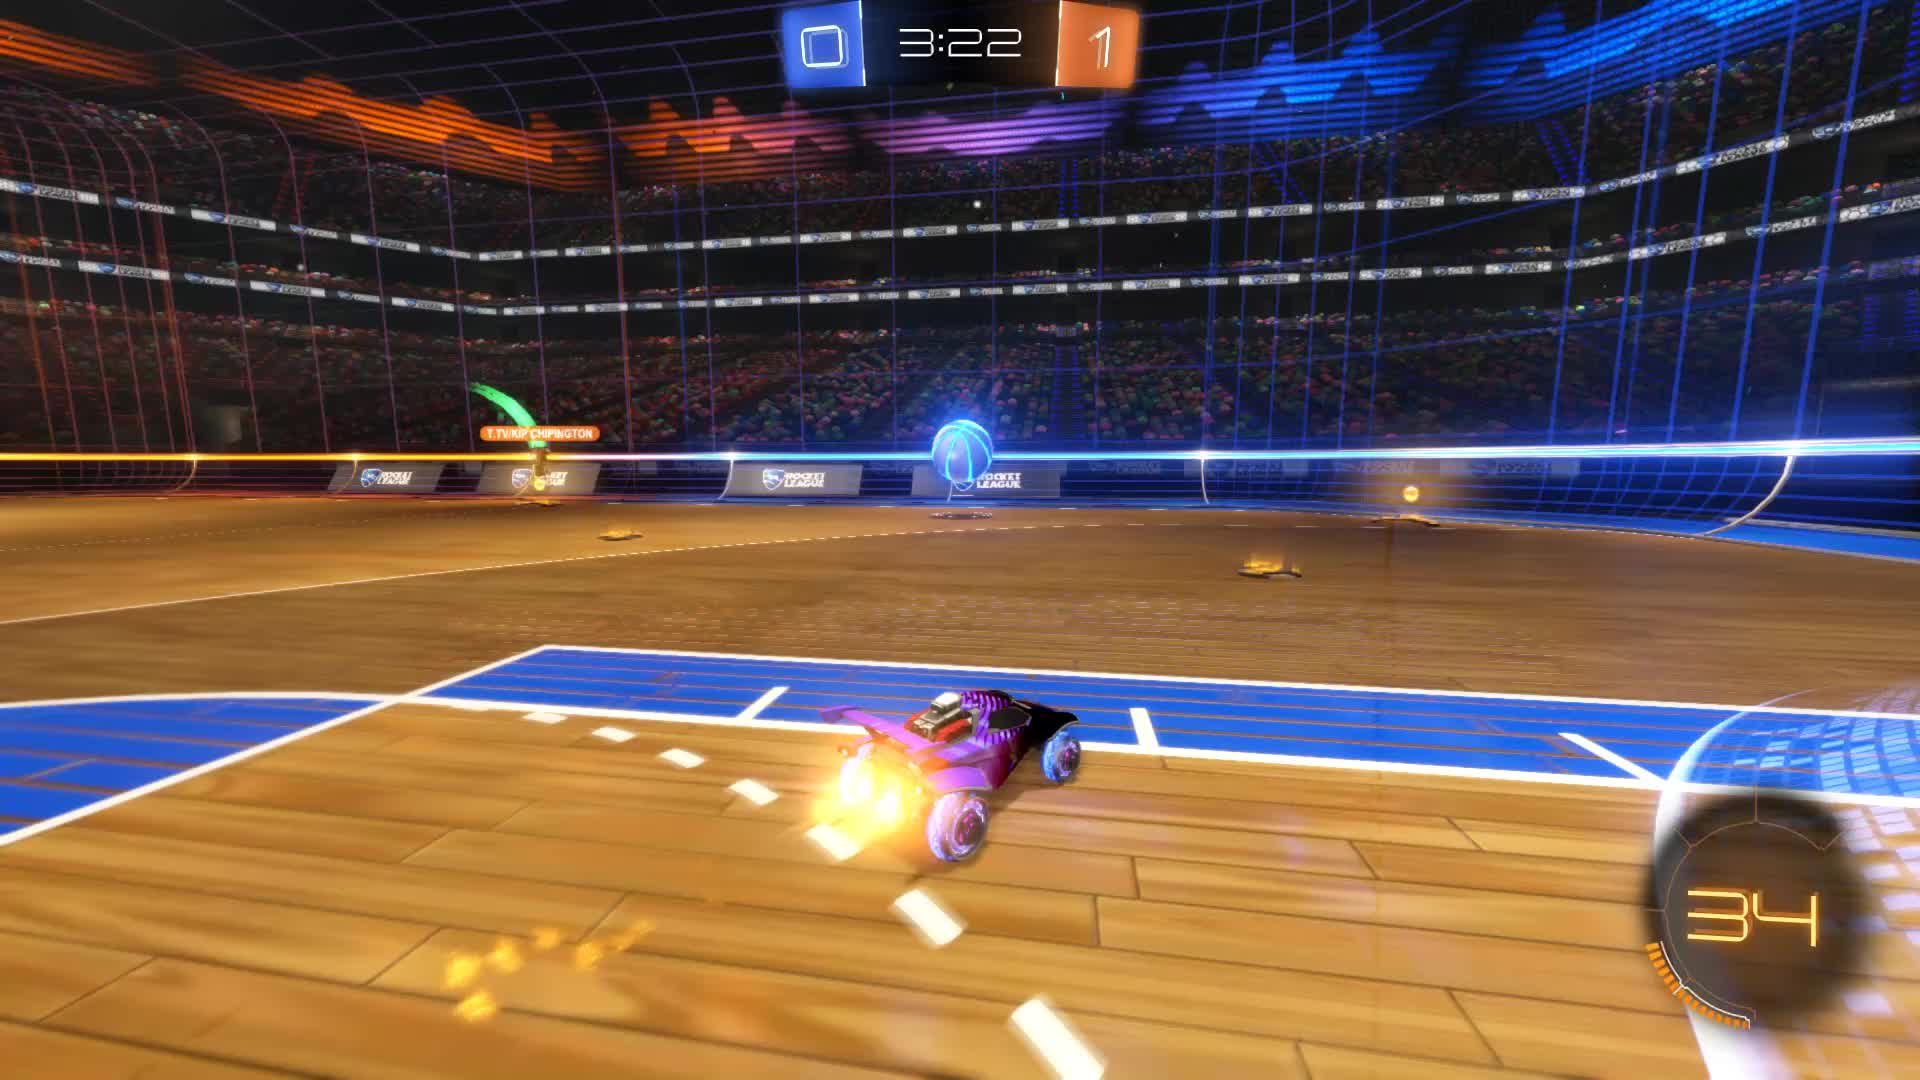 Gif Your Game, GifYourGame, Goal, Rocket League, RocketLeague, Wisconsin, Goal 2: Wisconsin GIFs